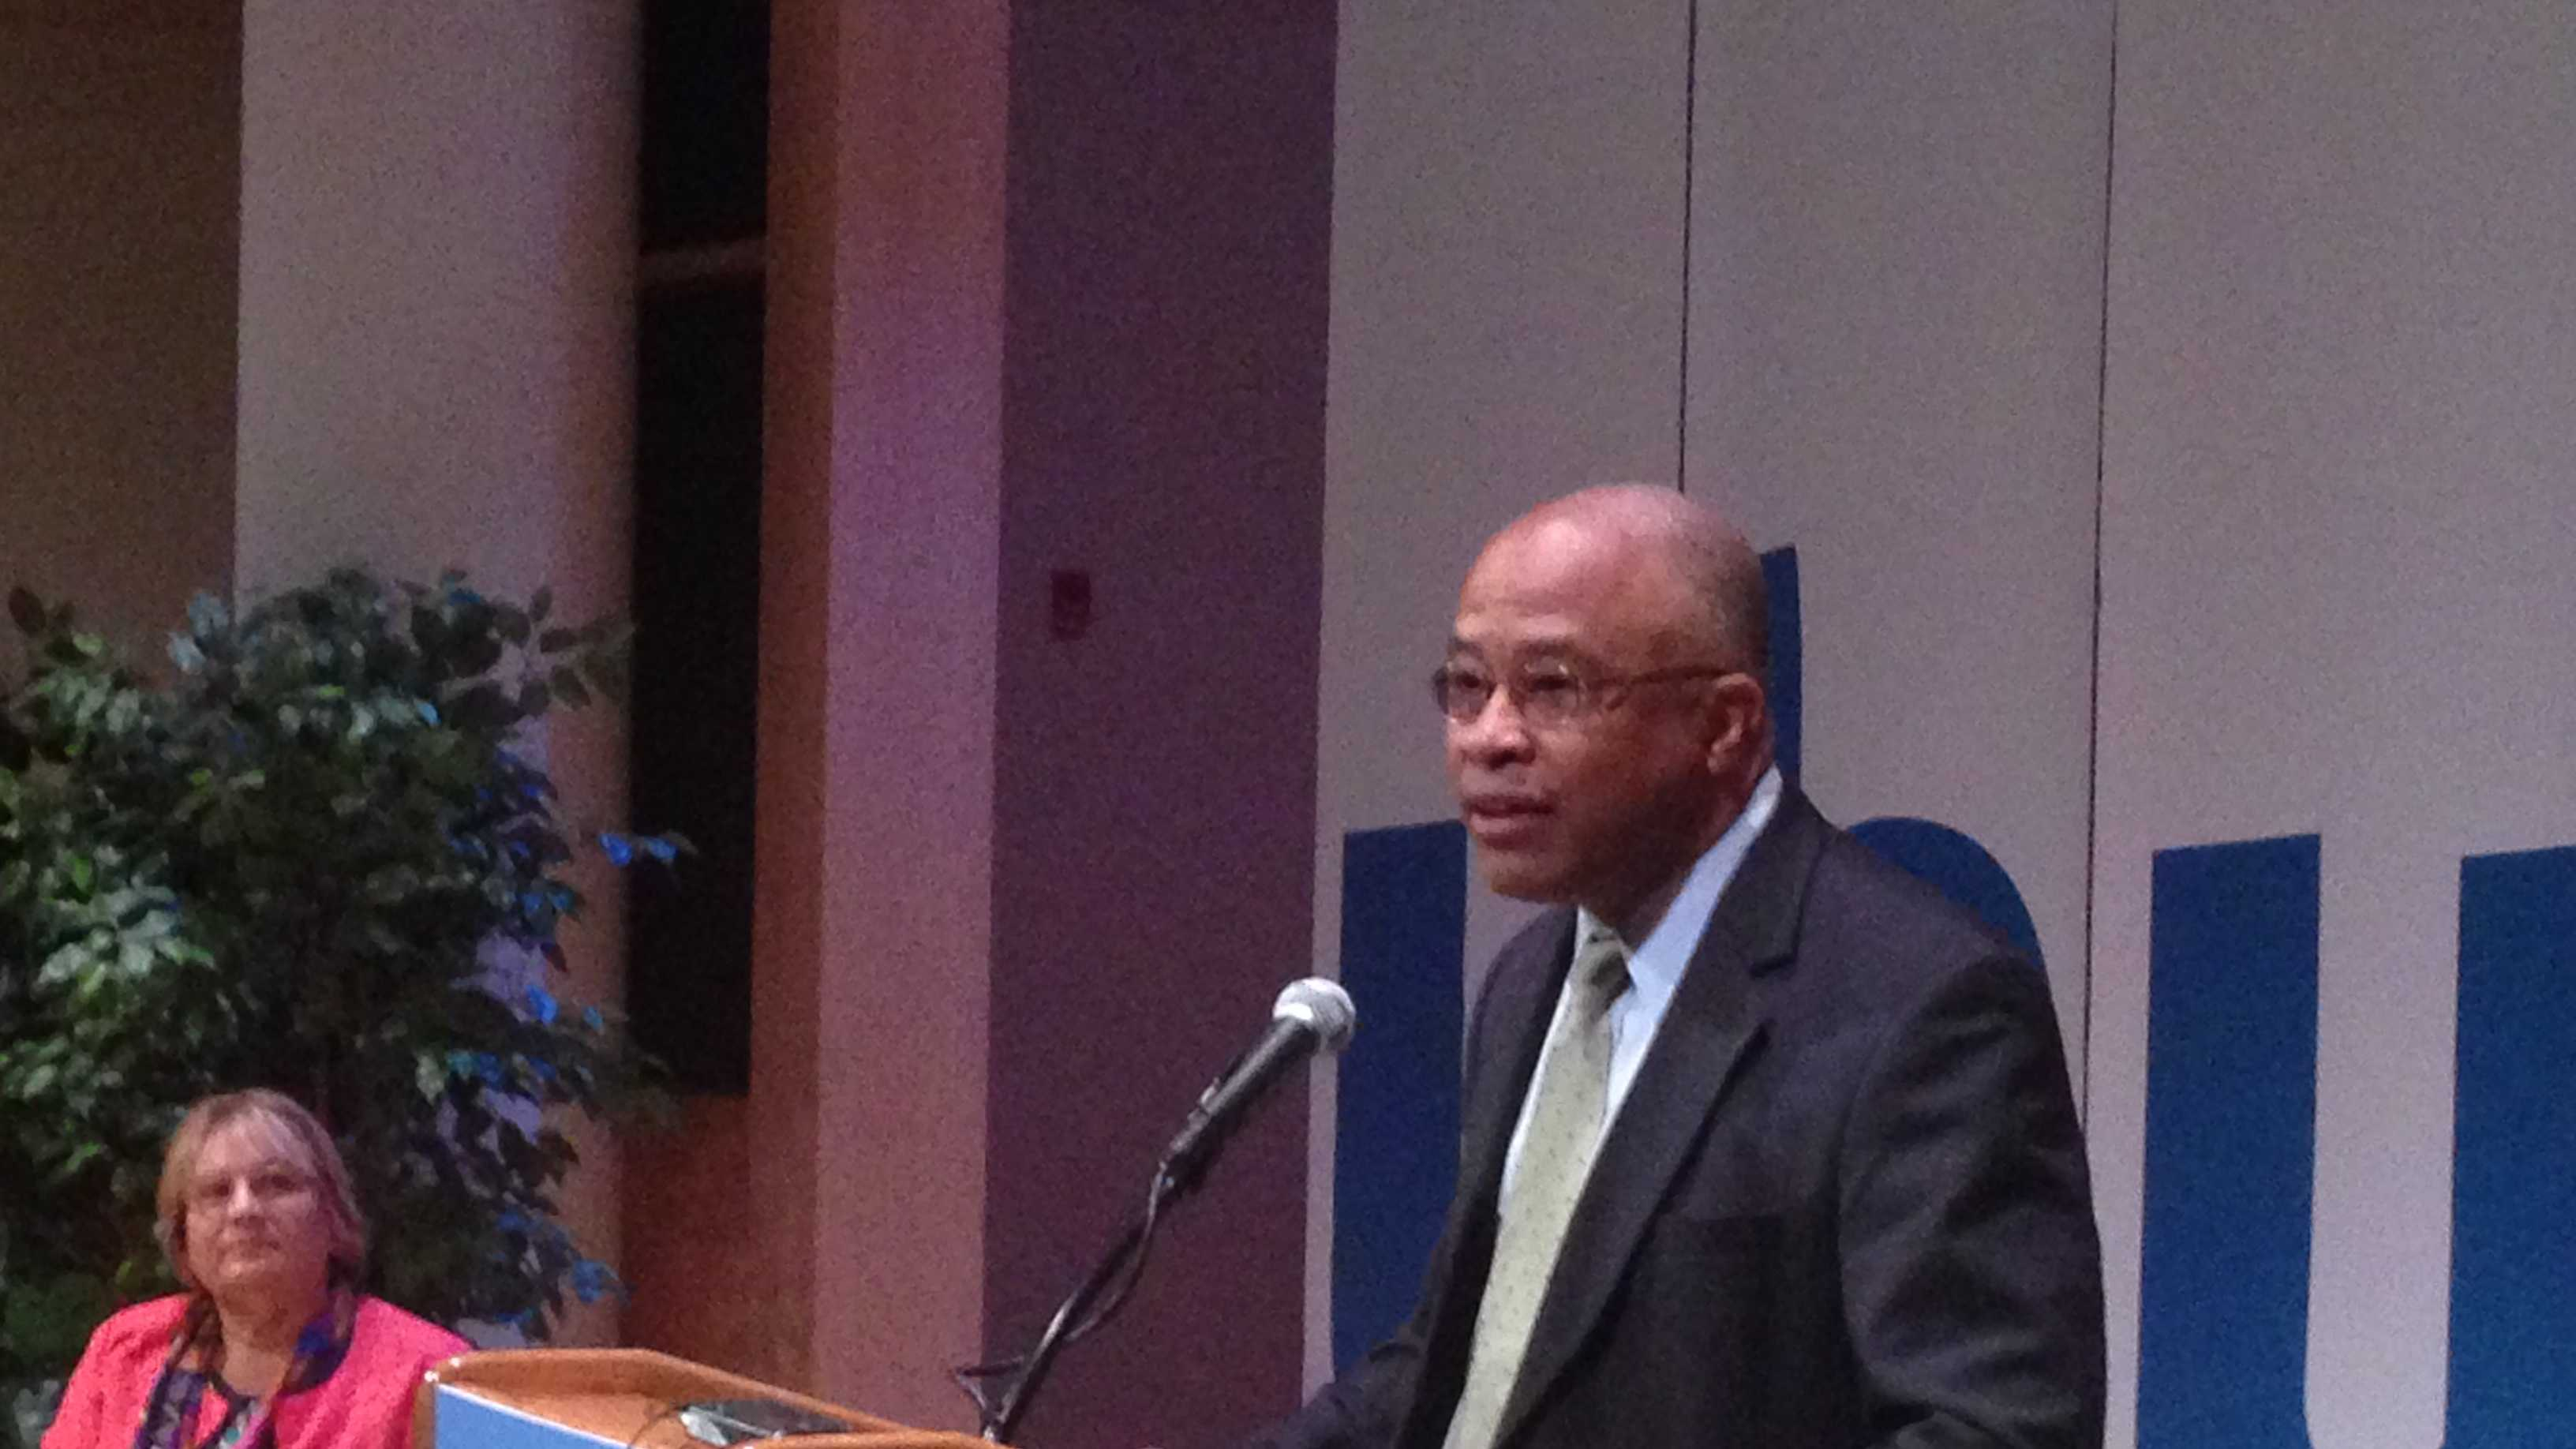 Former Baltimore Mayor Kurt Schmoke returns to the city to become the new president of the University of Baltimore.